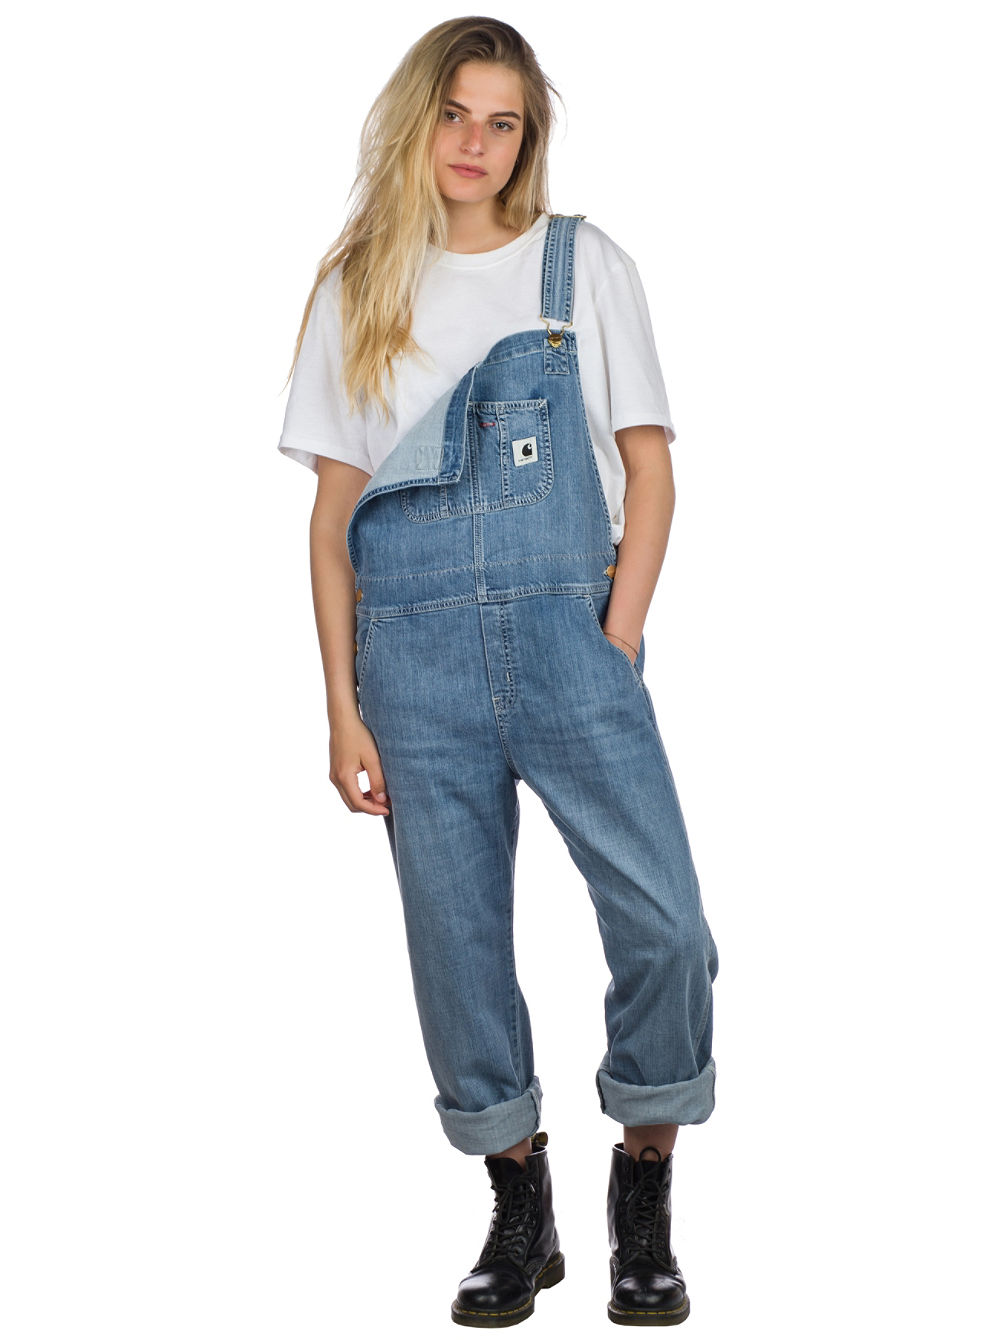 Bib Overall Straight Jeans